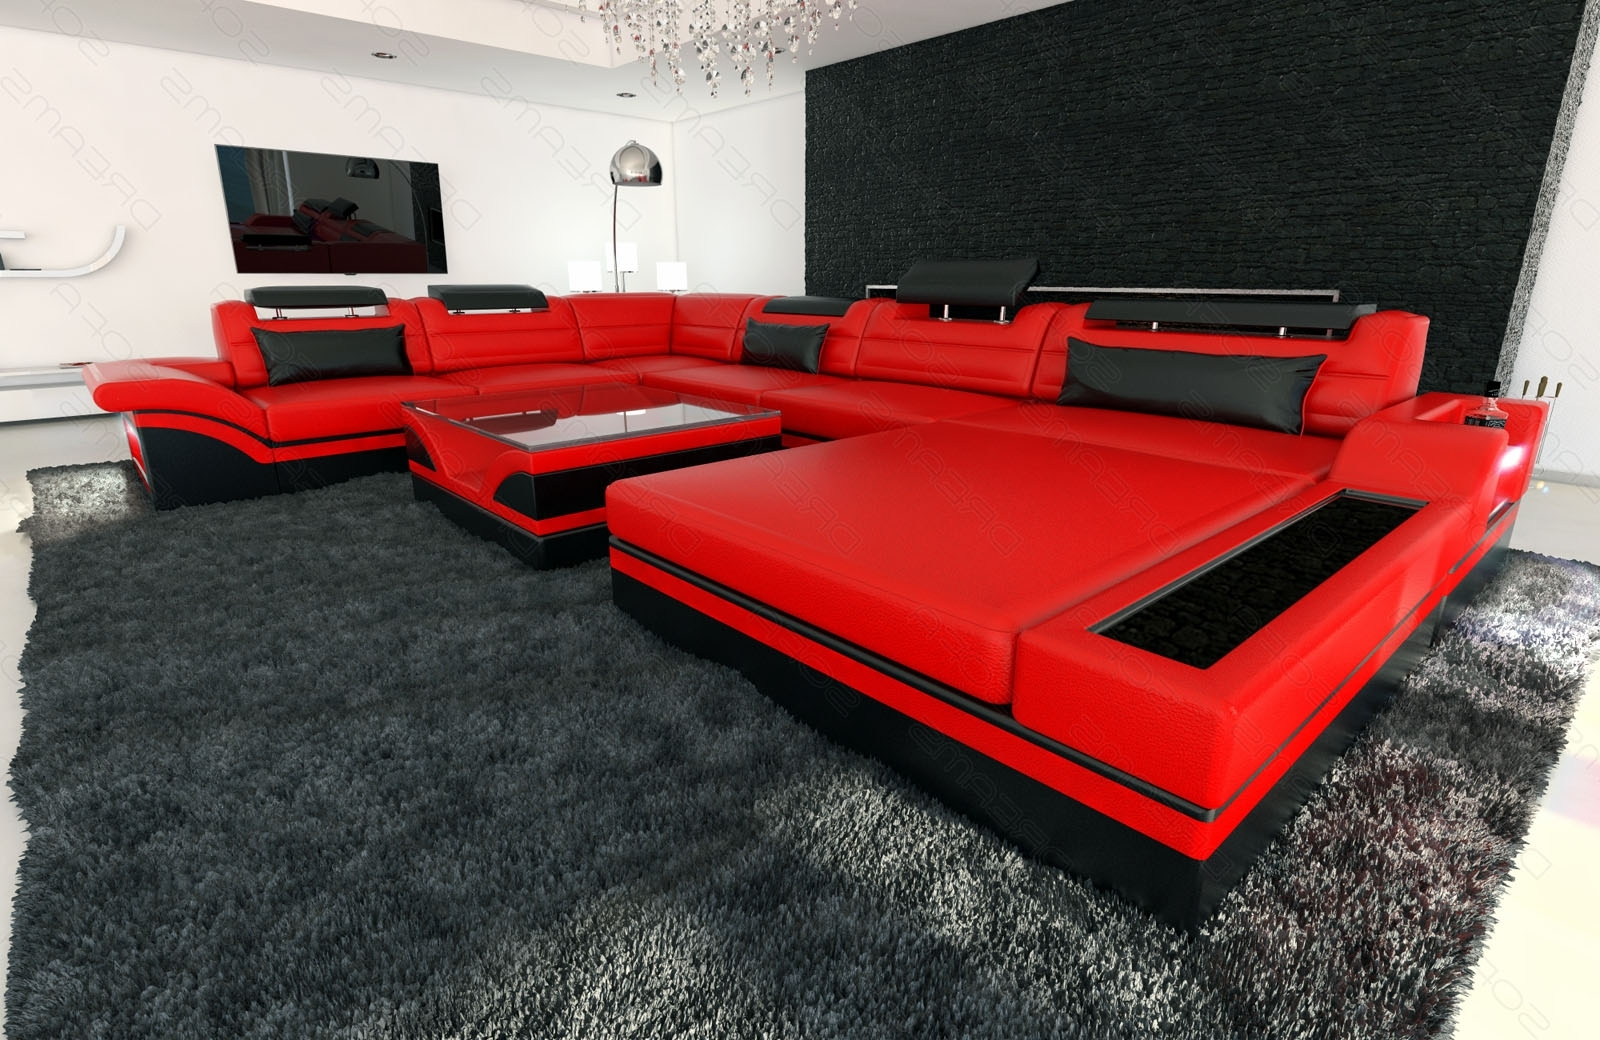 Design Sectional Sofa Mezzo Xxl With Led Lights Red Black (View 2 of 20)